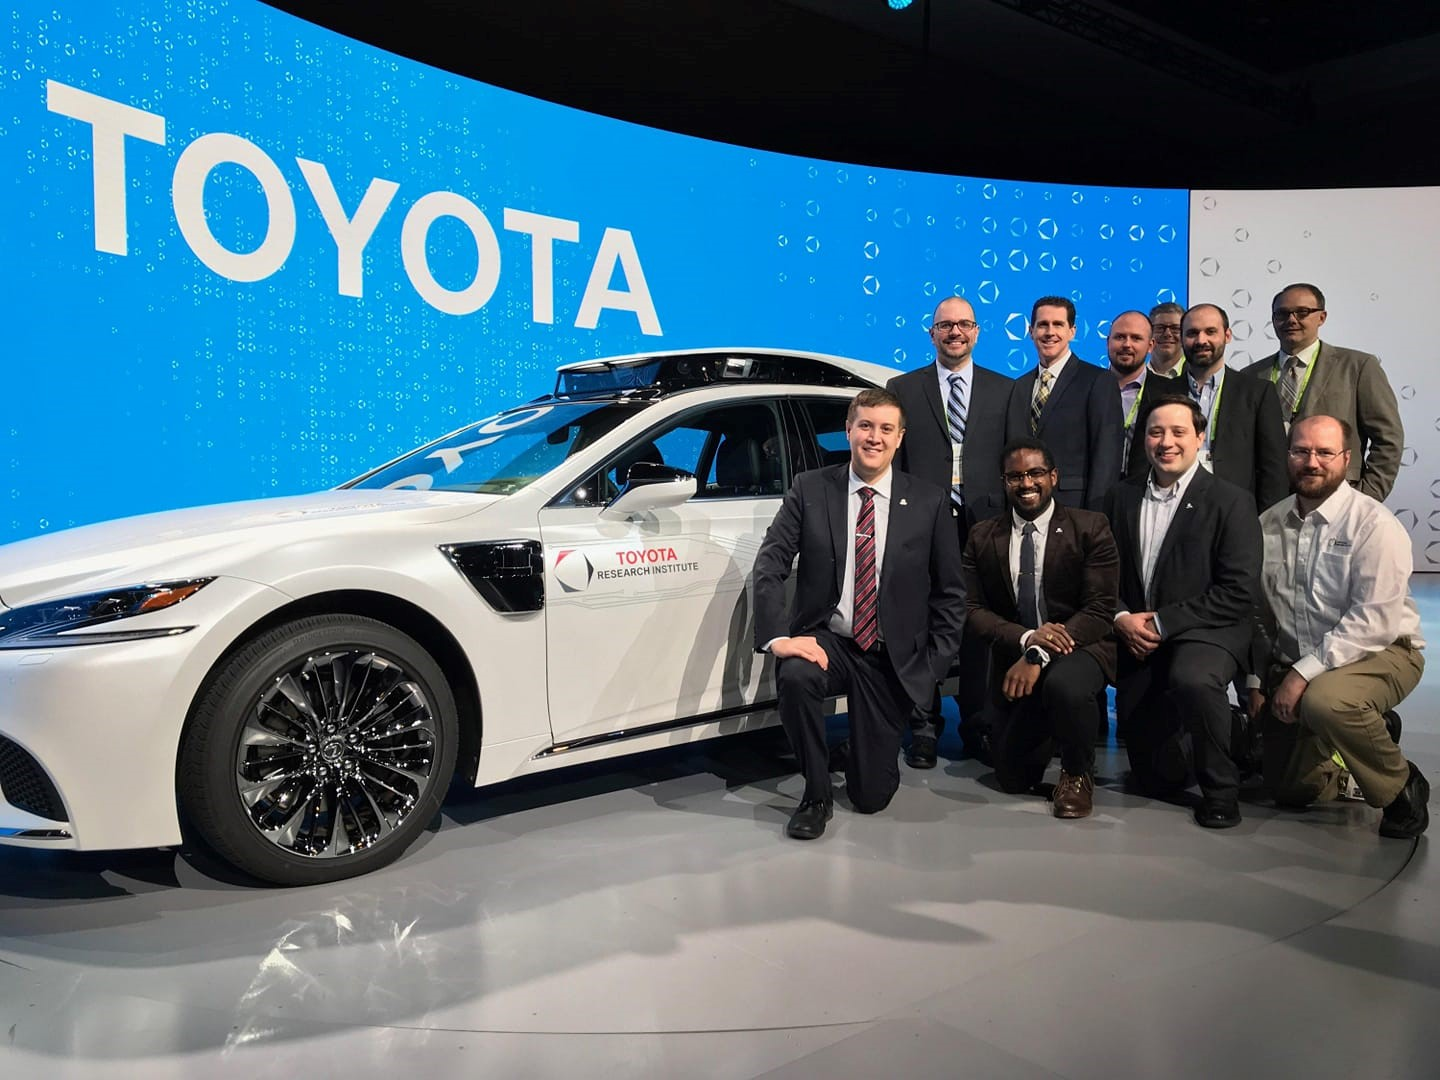 A team at Toyota Research Institute poses with a car design